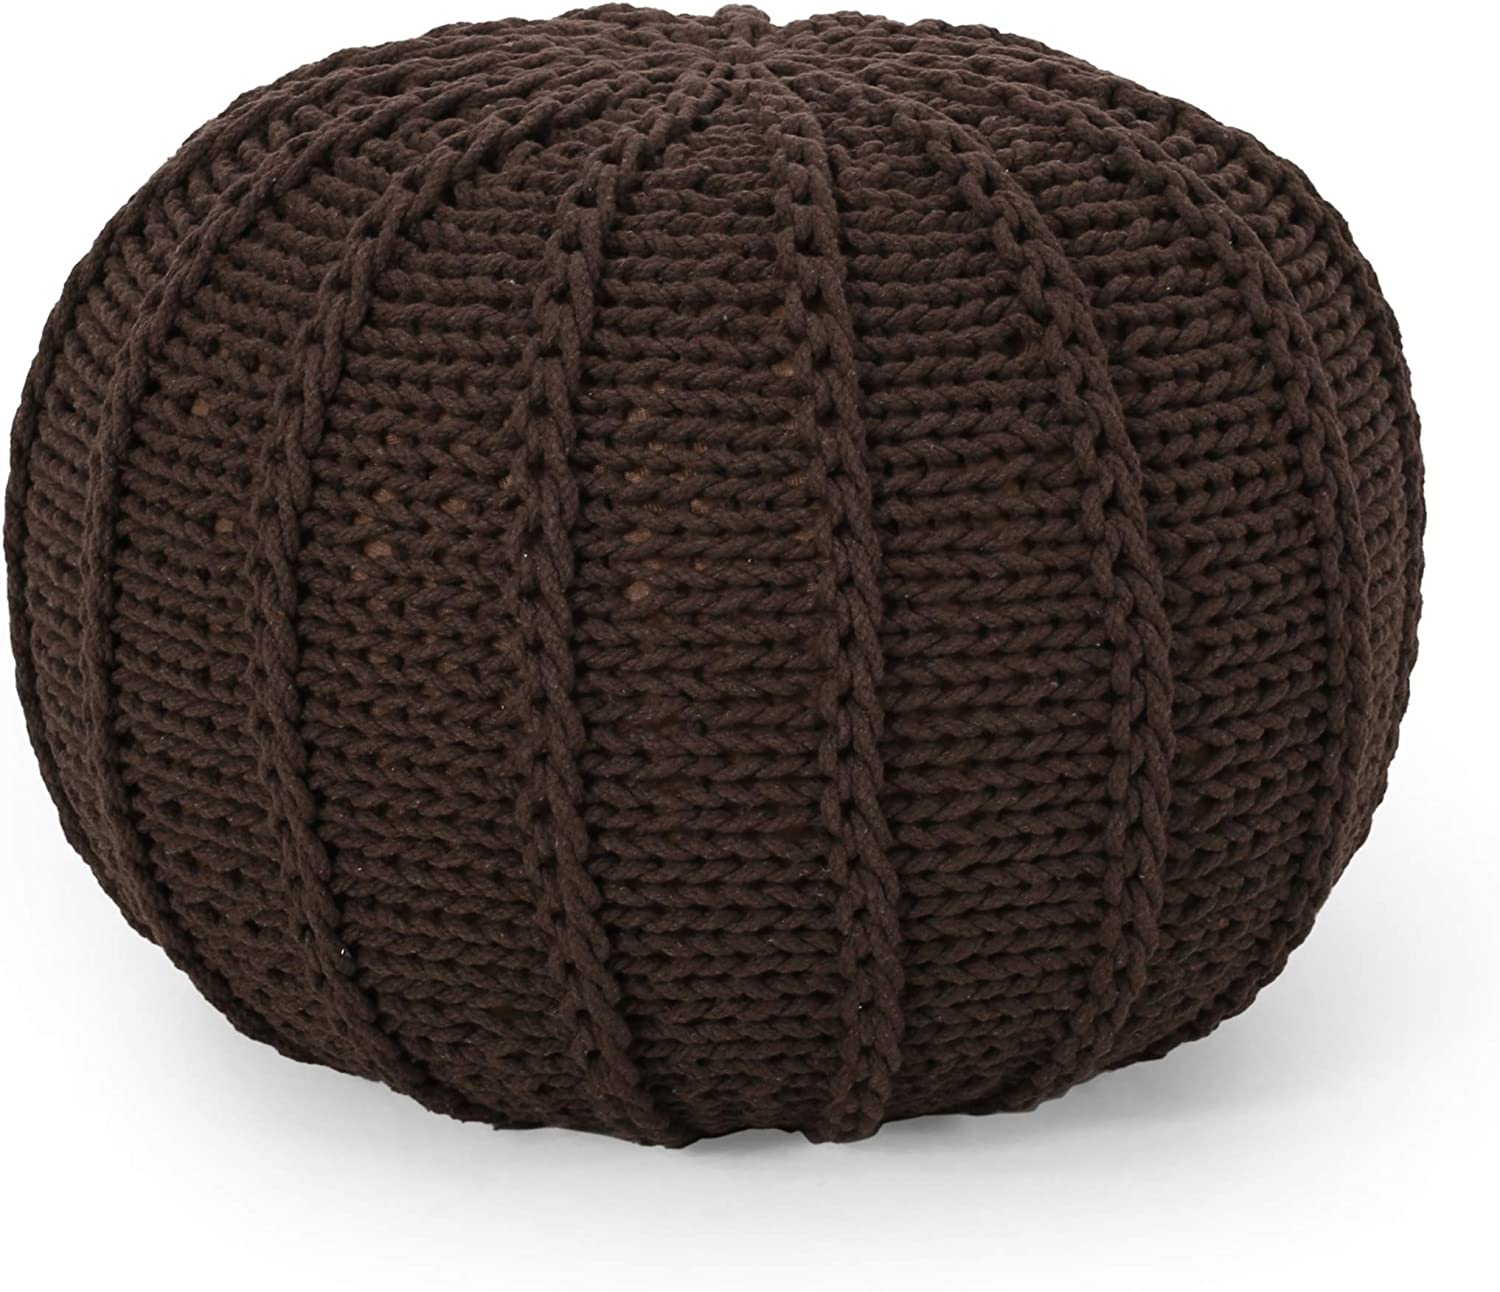 Christopher Knight Home Corisande Modern Knitted Cotton Round Pouf, Brown